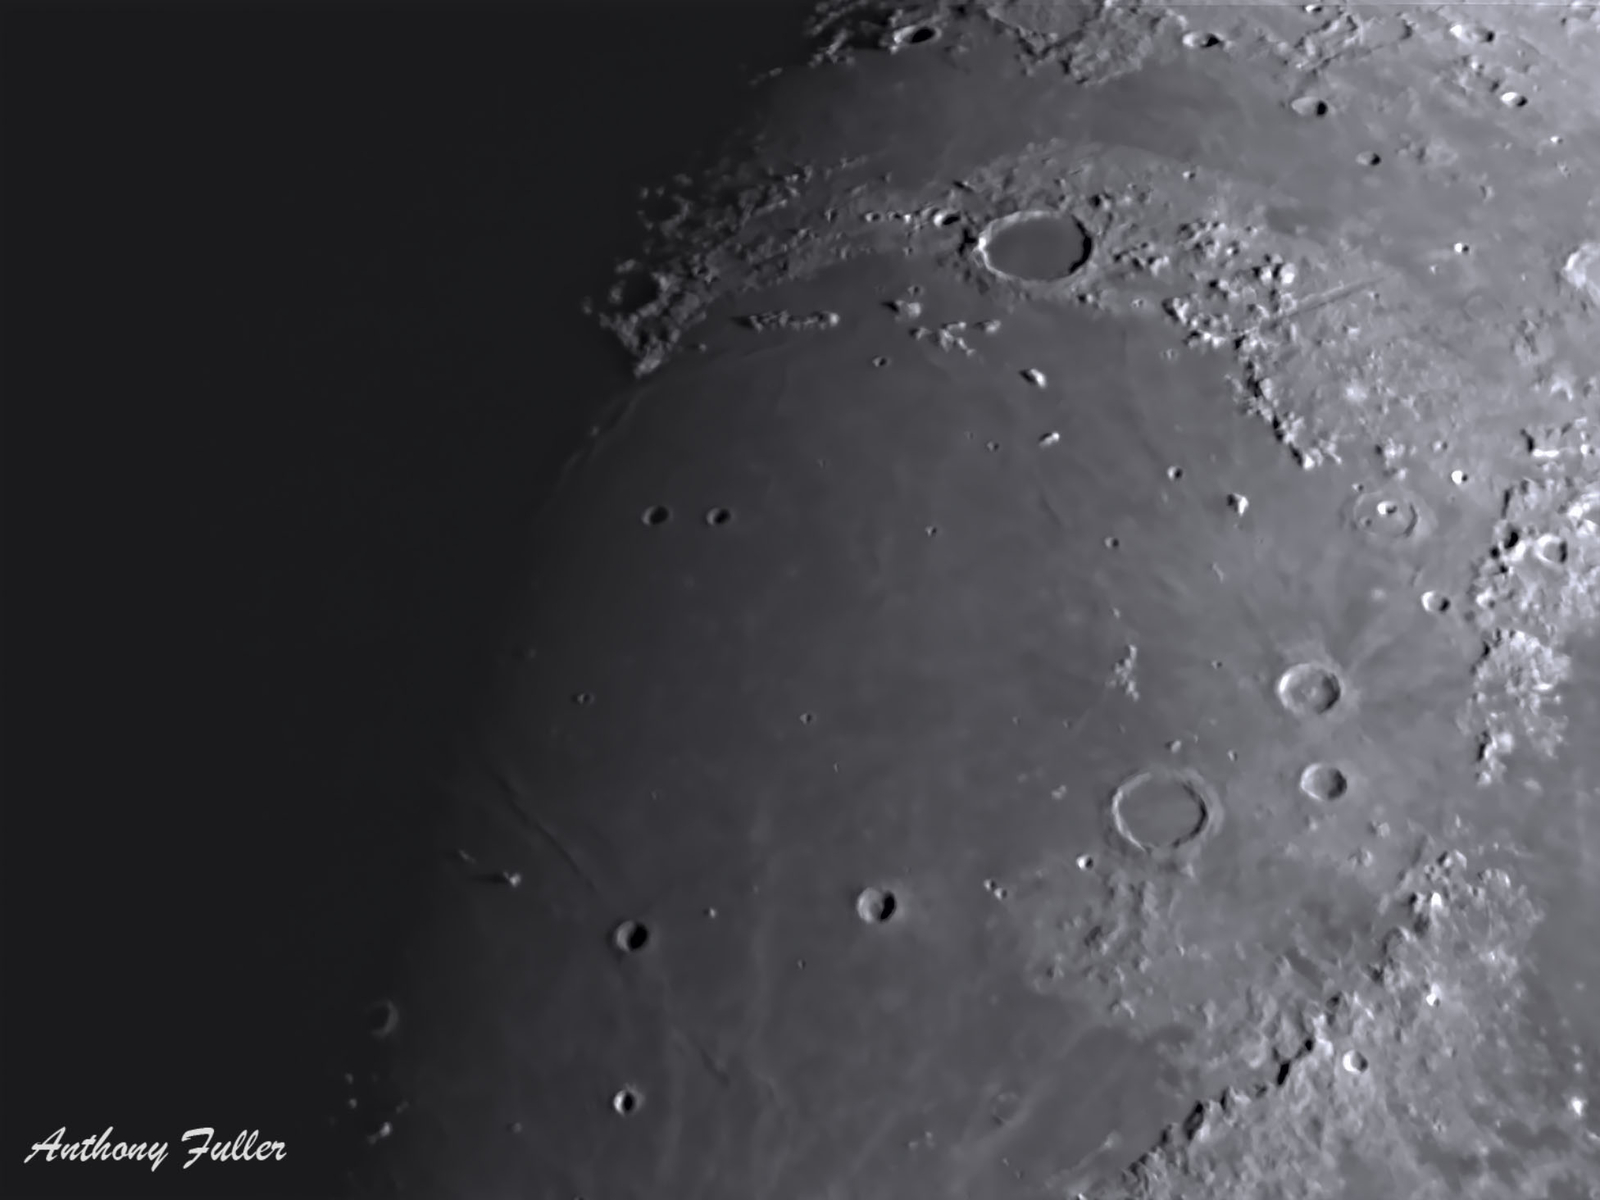 moon_surface2.jpg